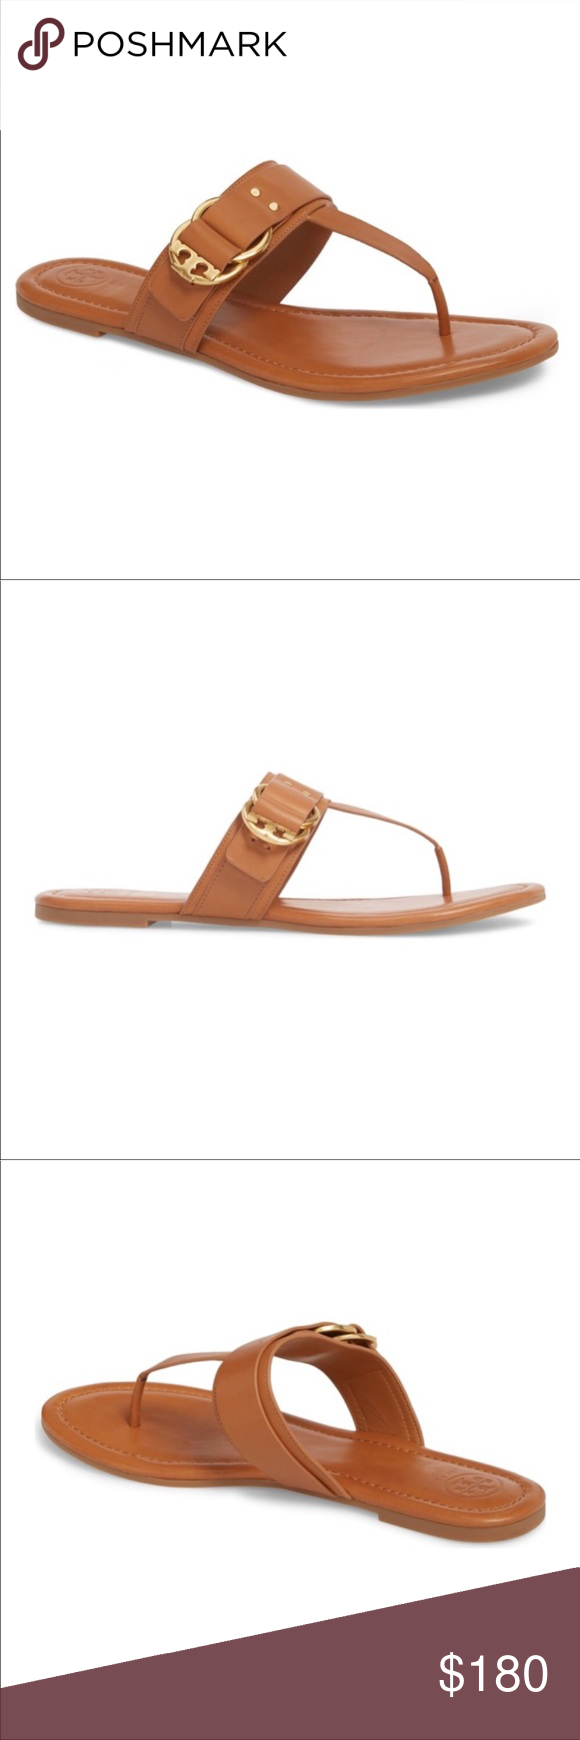 2f4fbd5e6730 Tory Burch Marsden flat thong sandal New in box Details Double-ring T logo  hardware details this thong sandal to give you a signature look with casual  ...